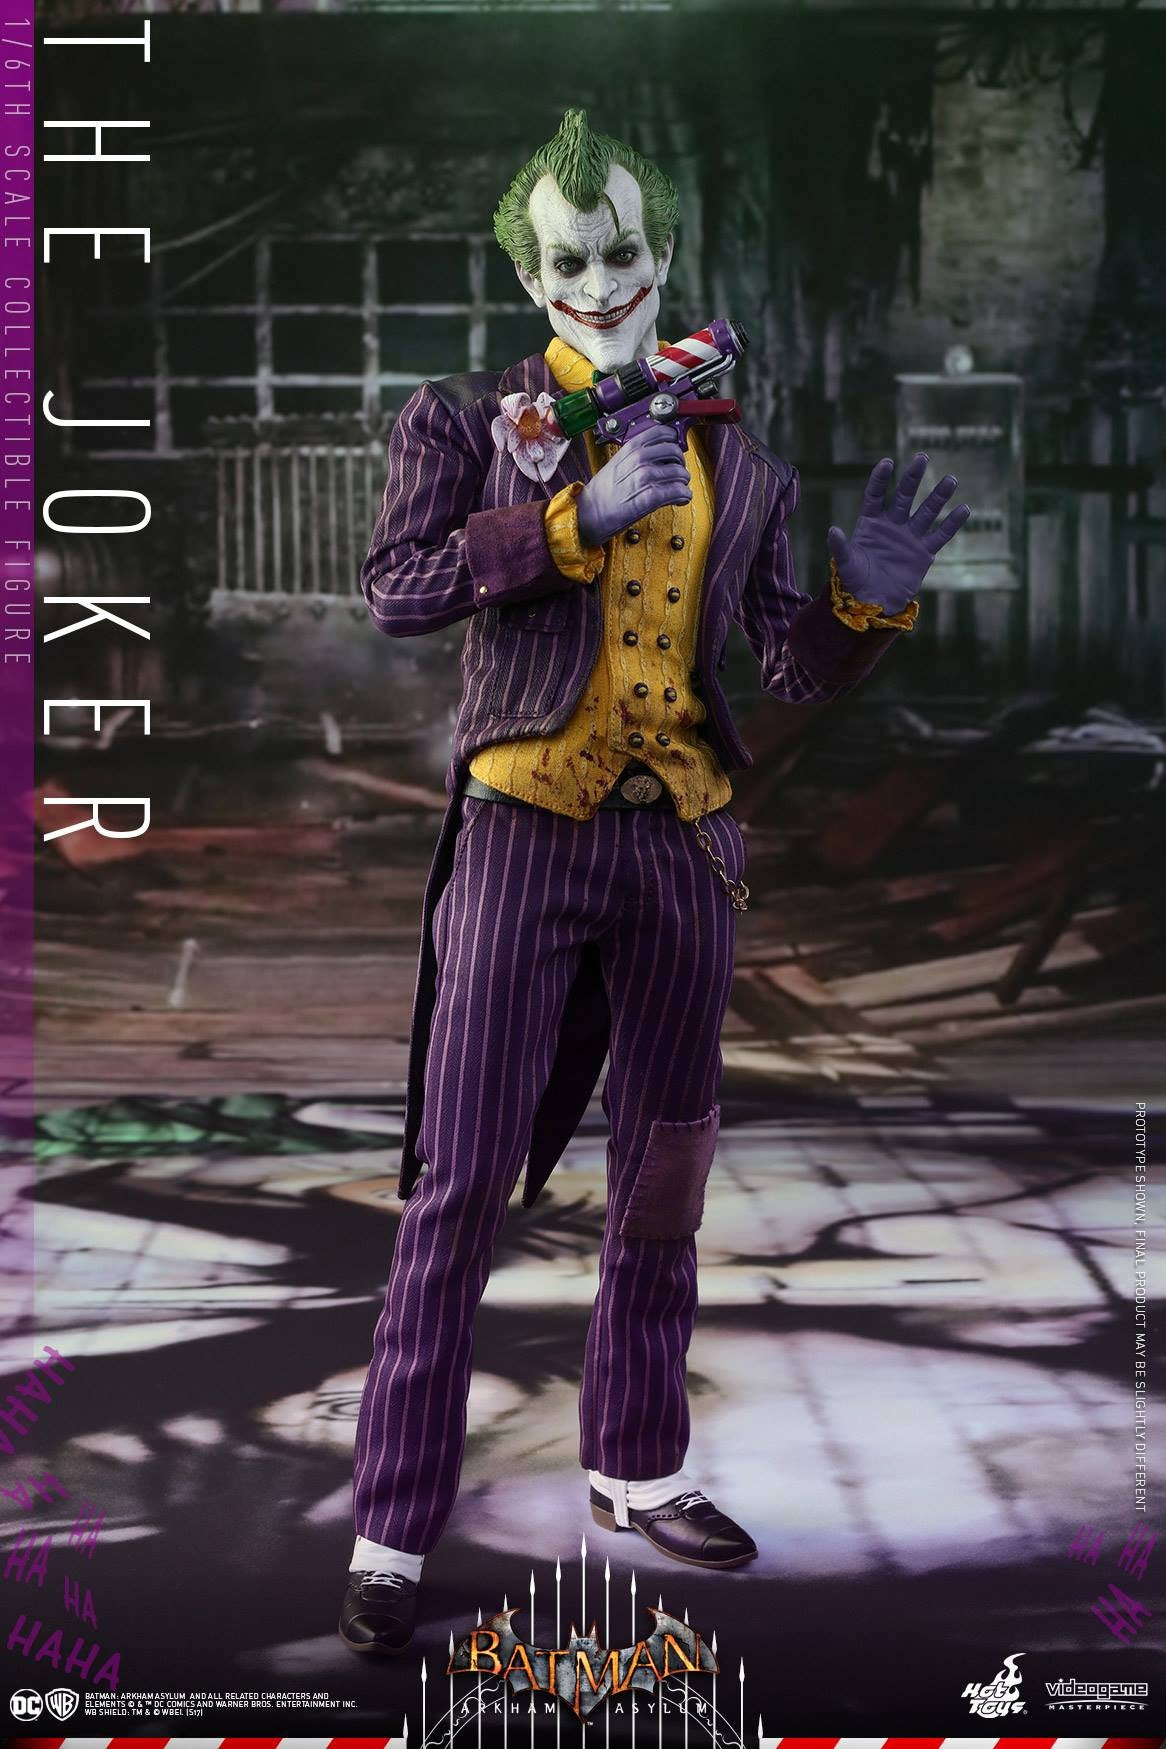 Hot Toys - VGM27 - Batman: Arkham Asylum - The Joker - Marvelous Toys - 5